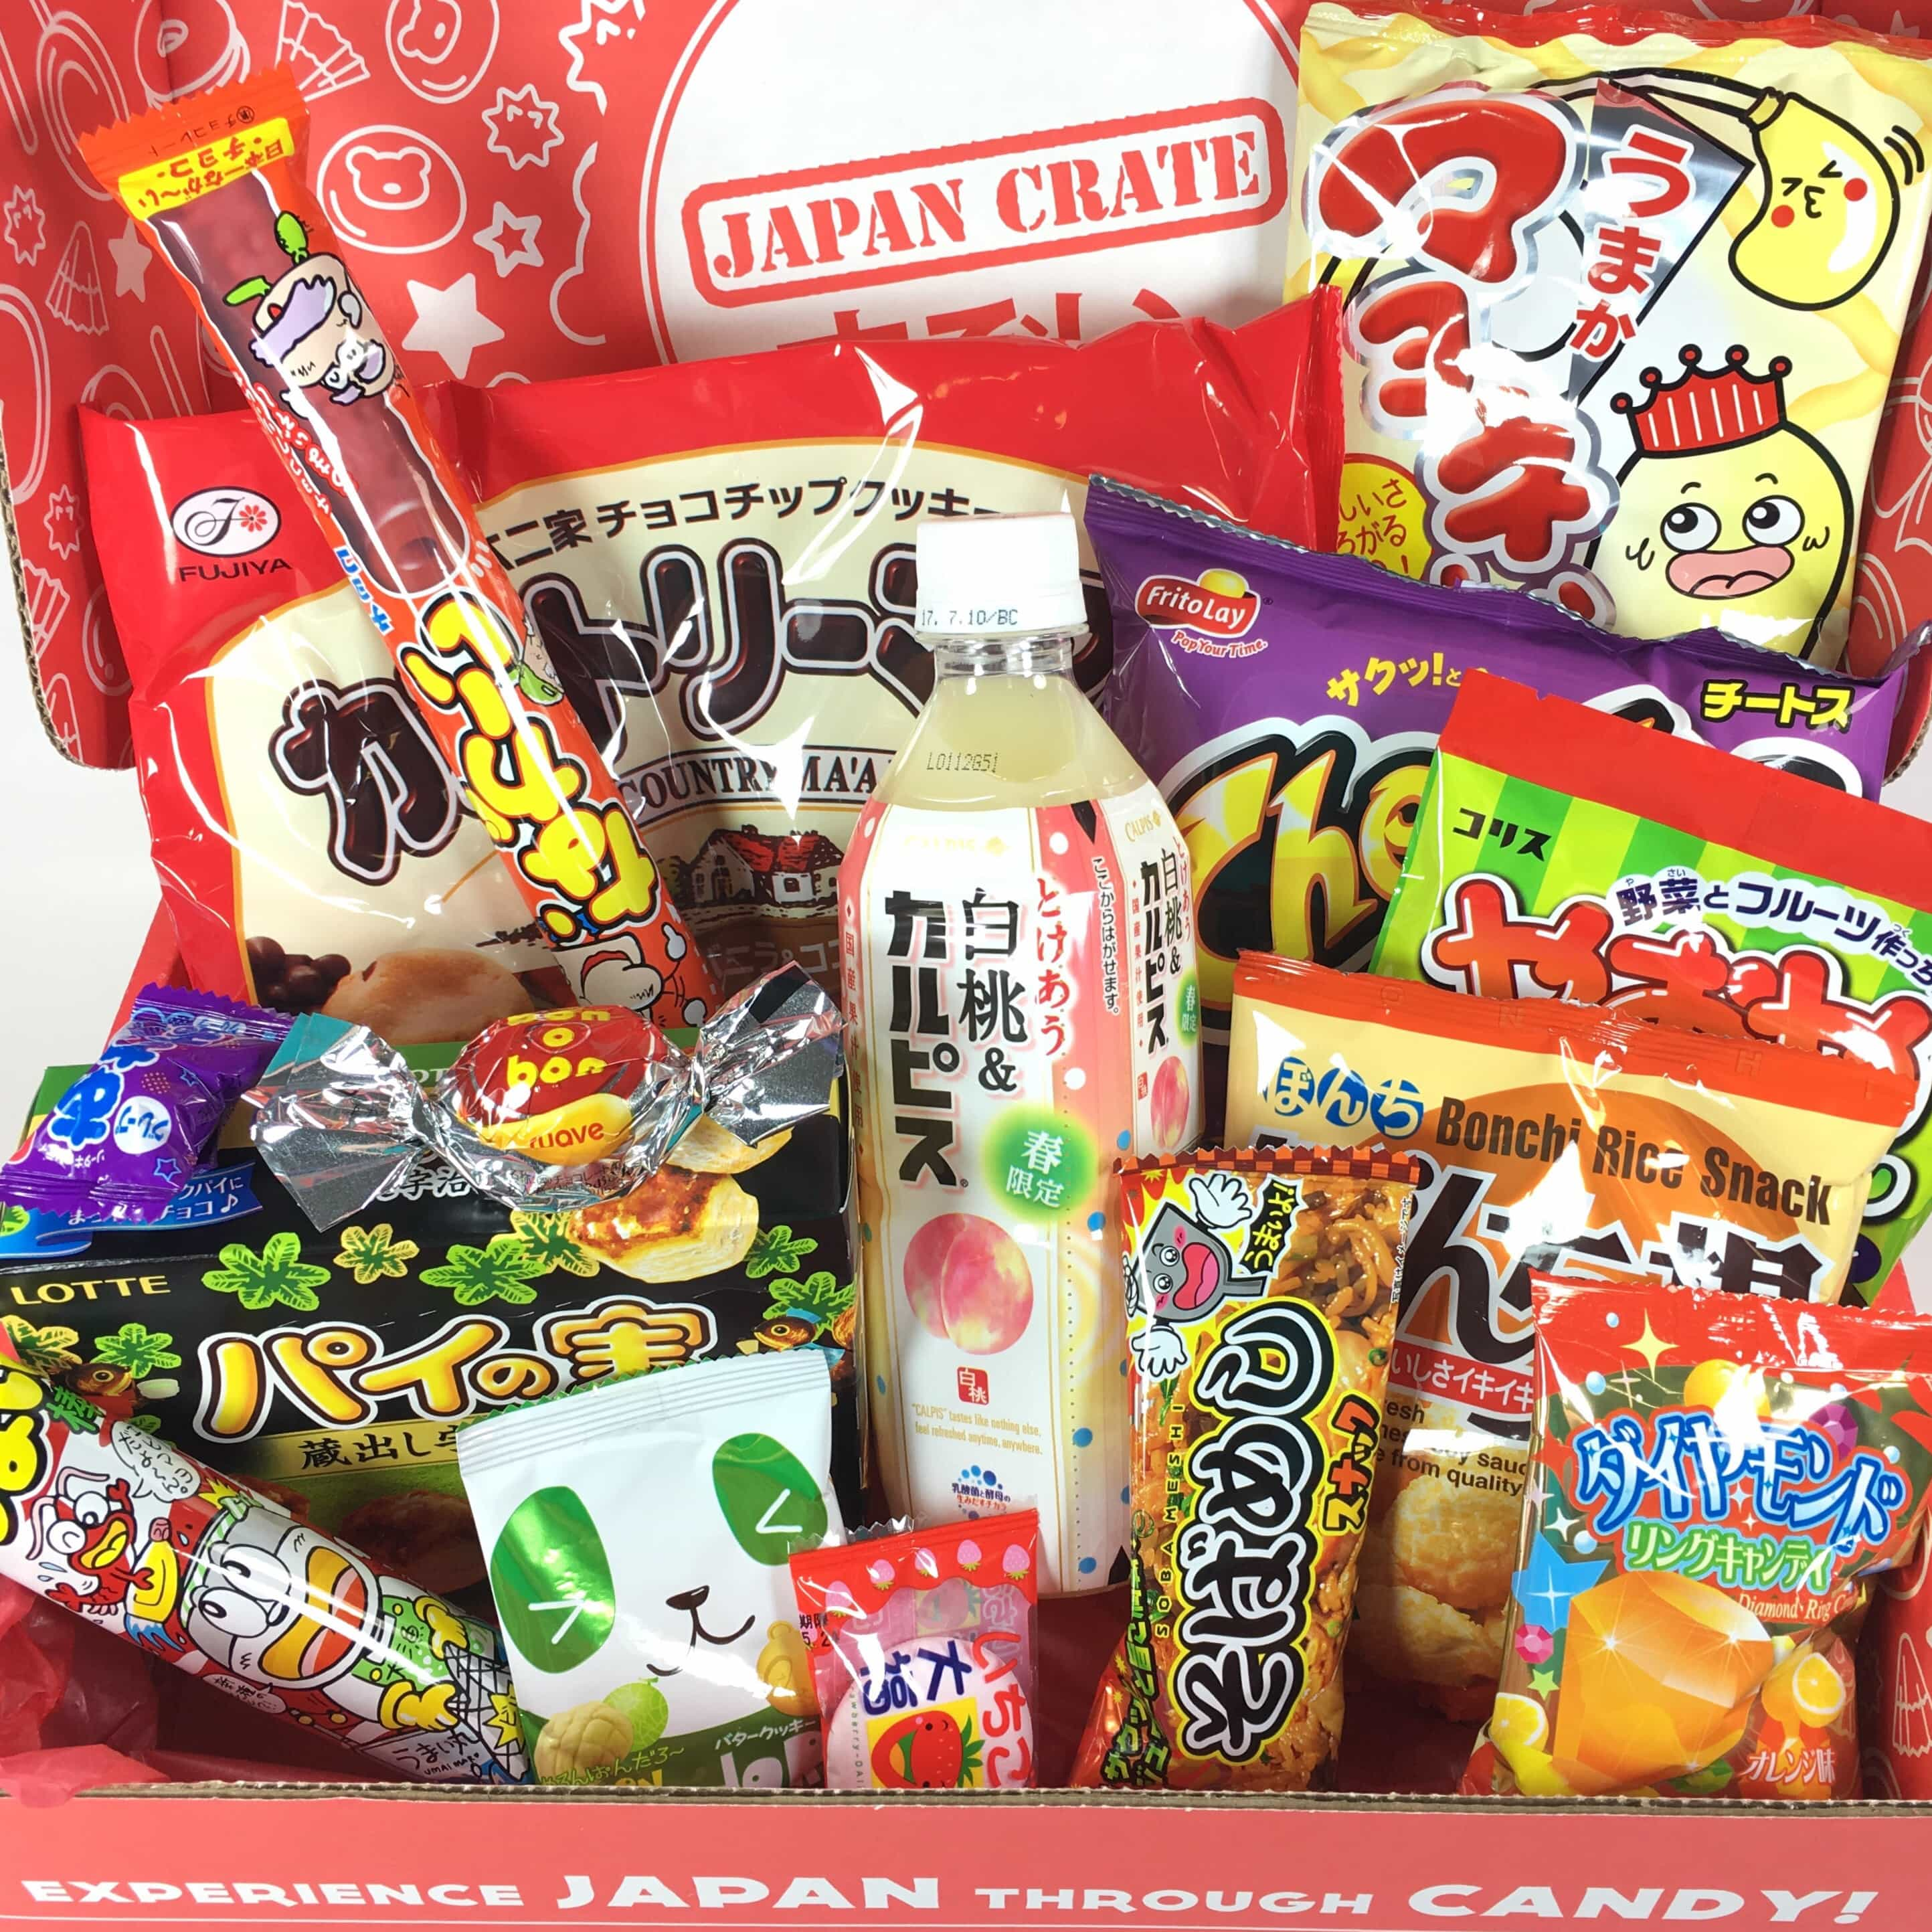 Japan Crate March 2017 Subscription Box Review + Coupon